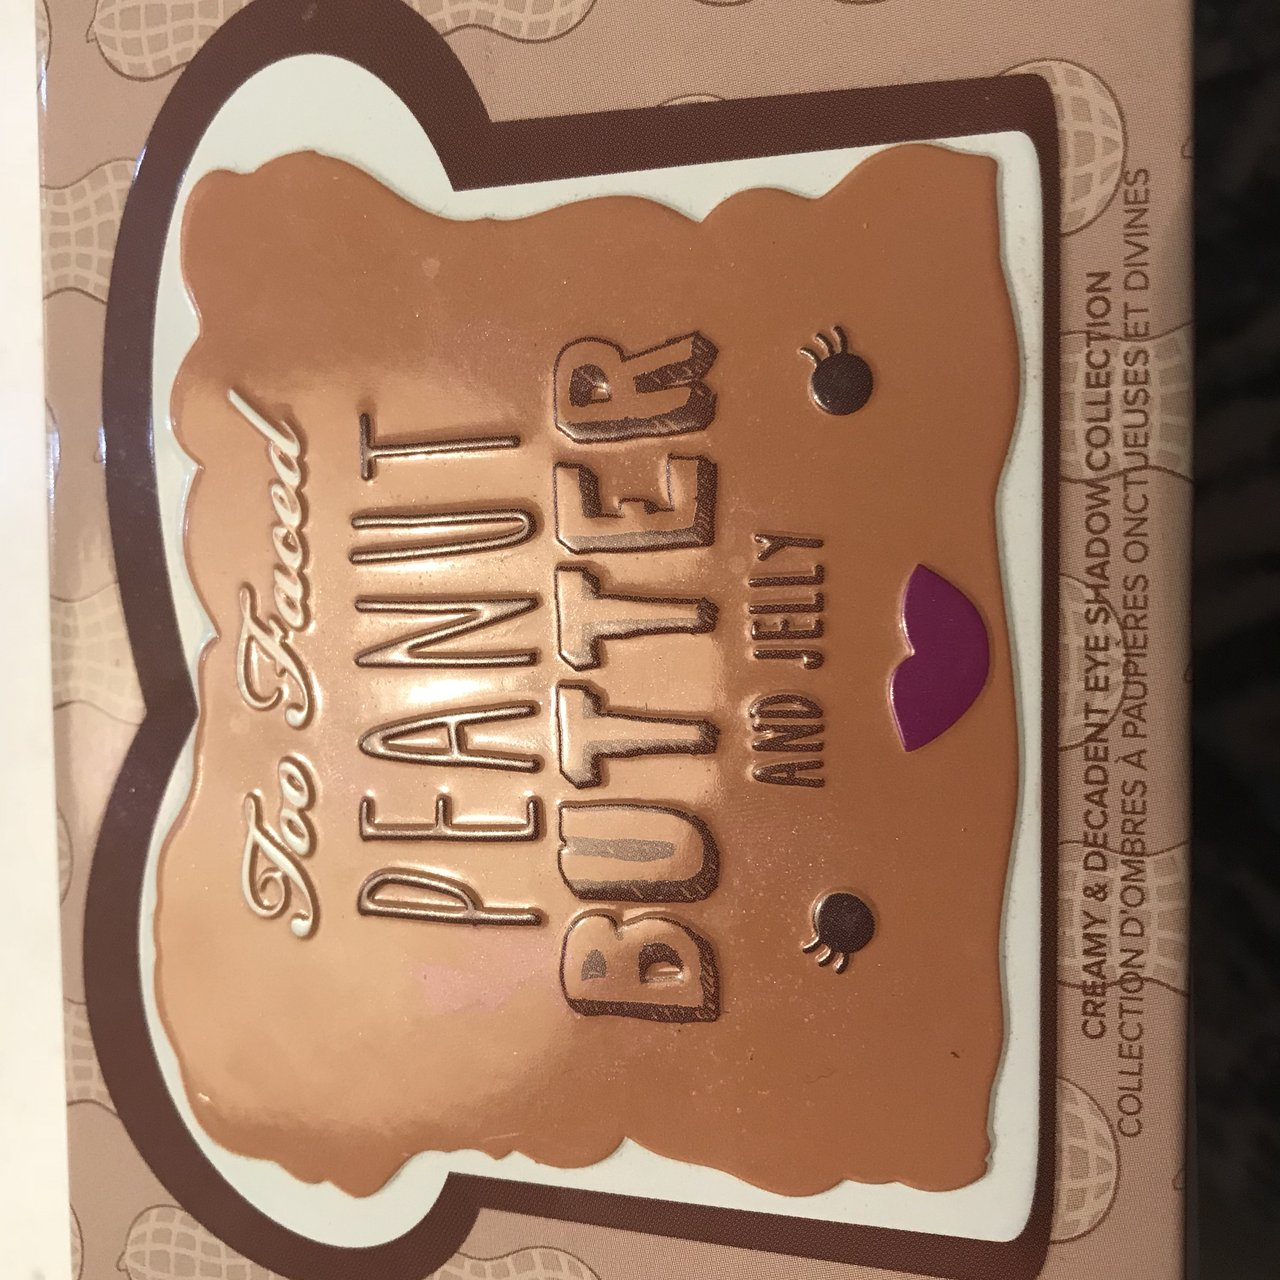 12b33a6a574d Too Faced Peanut butter and